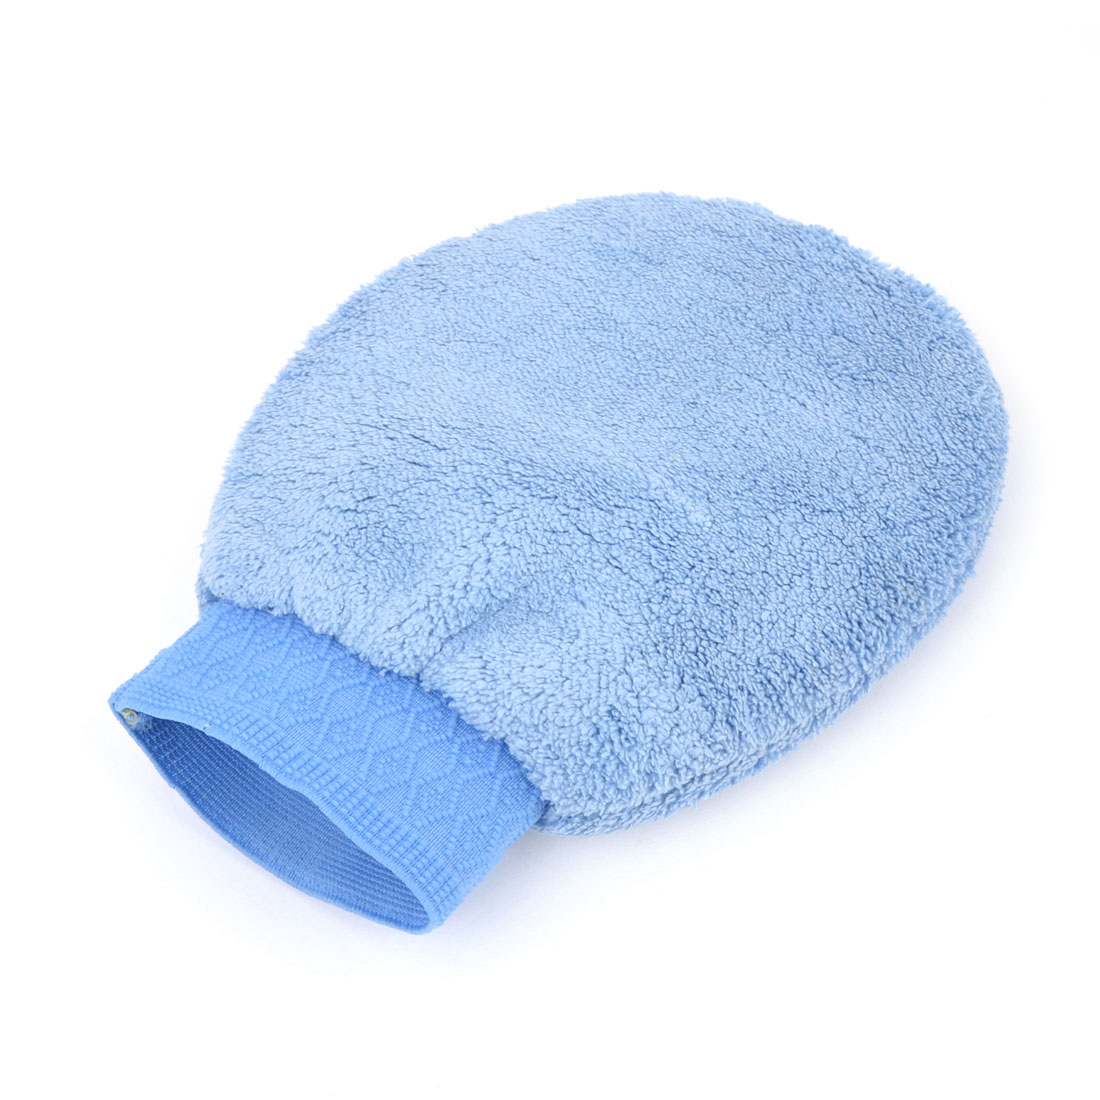 Car Washing Cleaning Tool Double Sides Microfiber Mitt Glove Blue